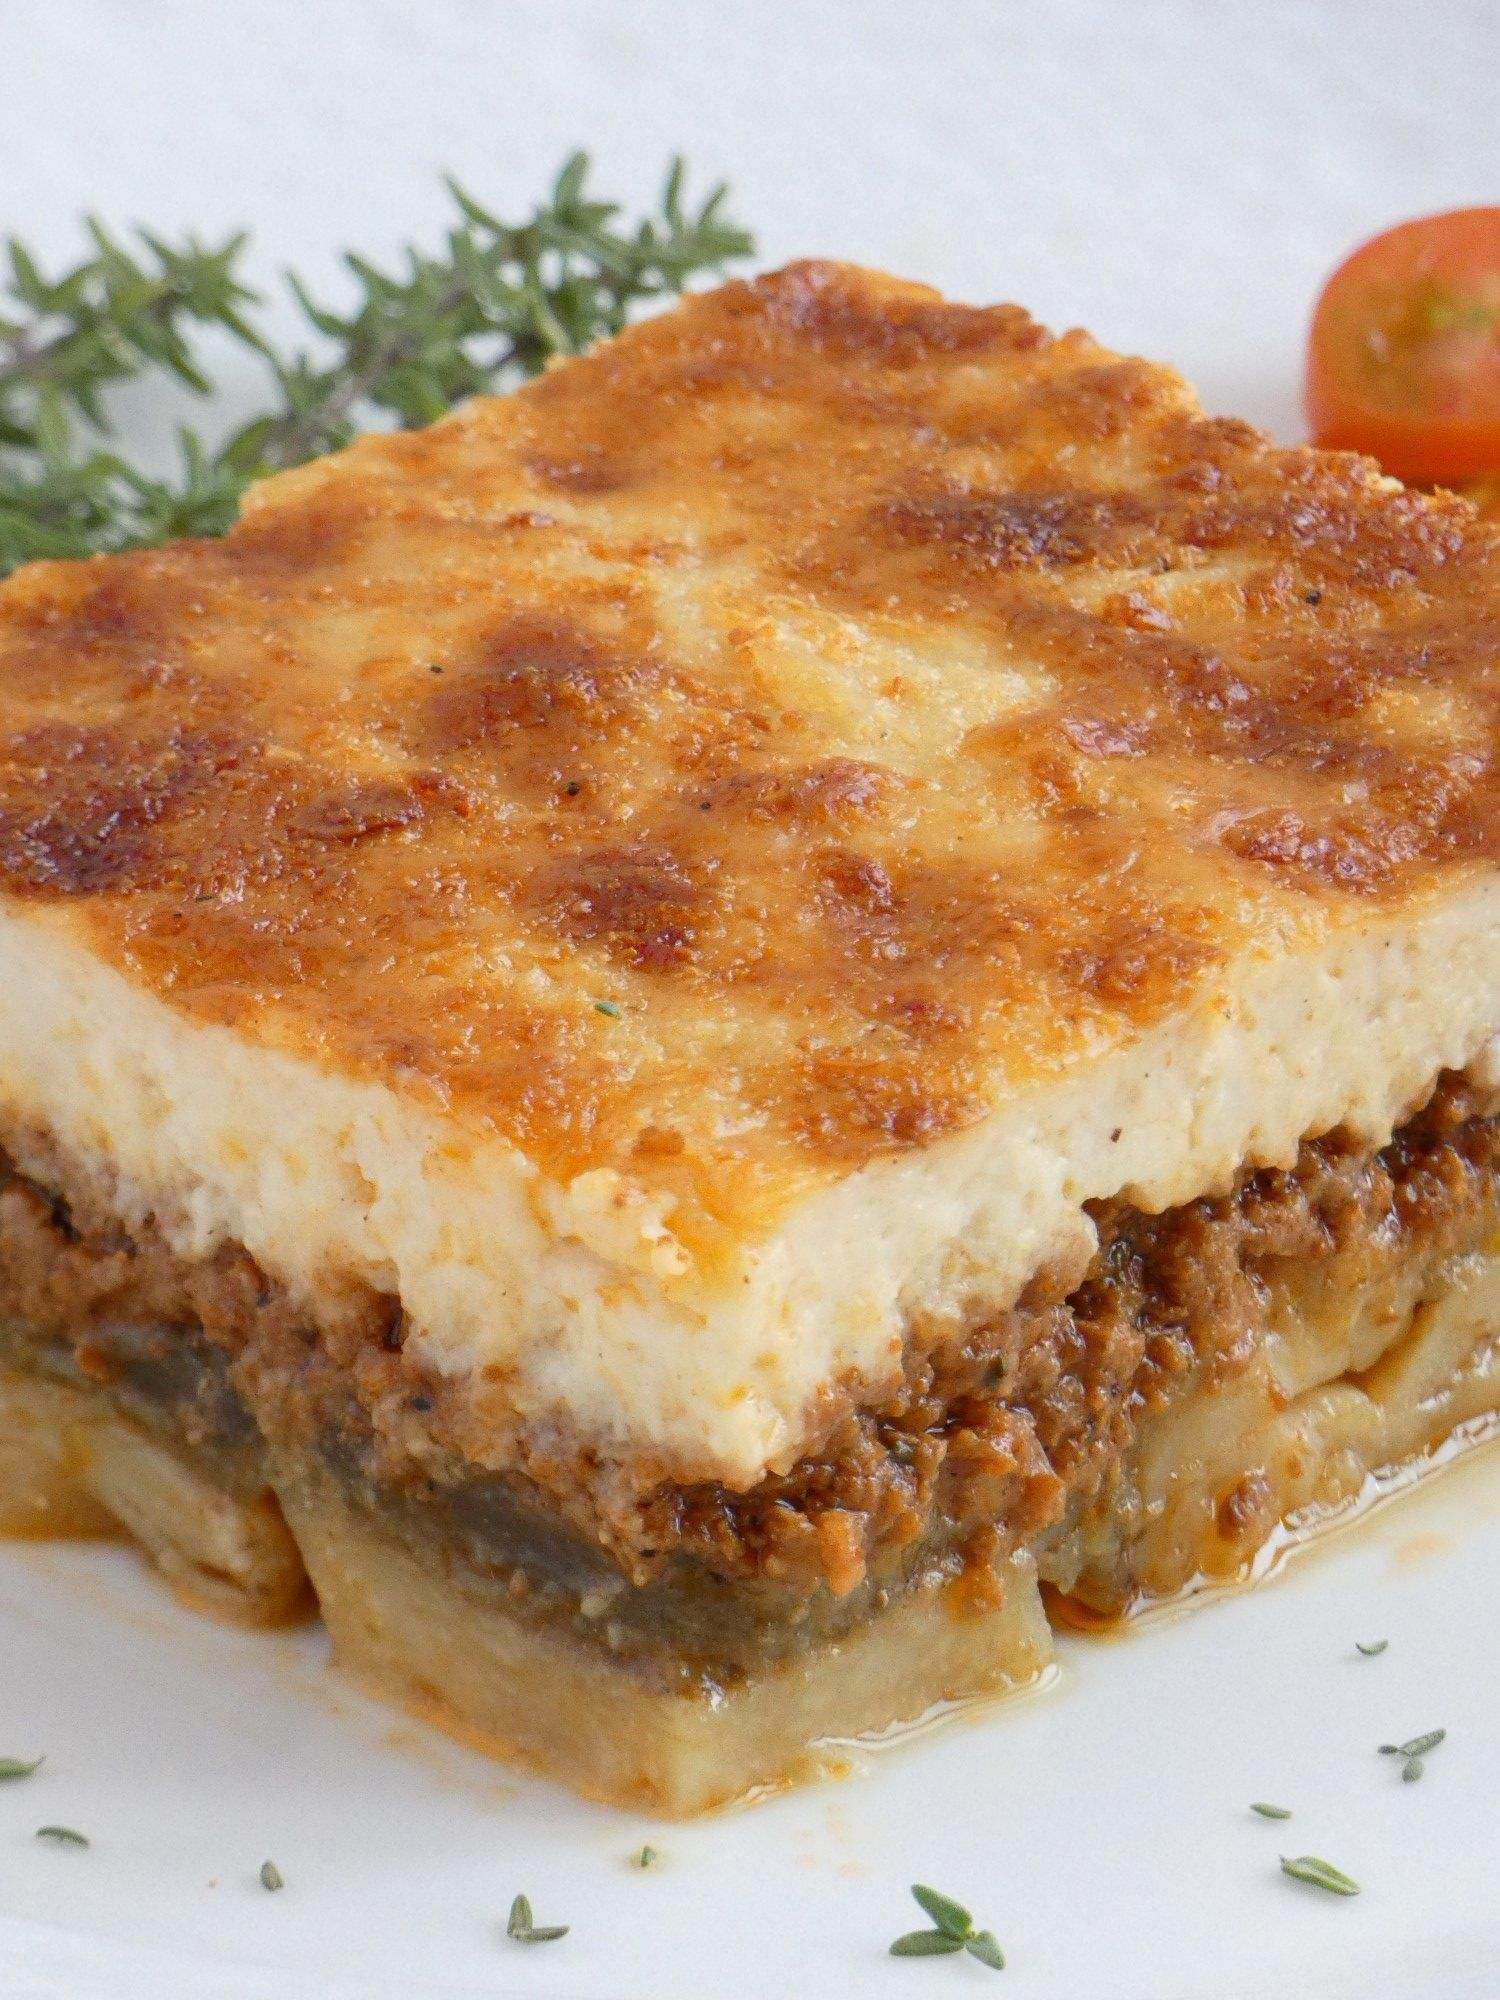 #traditional #moussaka #greekTraditional Greek Moussaka Traditional Greek MoussakaTraditional Greek Moussaka #moussakagriechisch #traditional #moussaka #greekTraditional Greek Moussaka Traditional Greek MoussakaTraditional Greek Moussaka #moussakagriechisch #traditional #moussaka #greekTraditional Greek Moussaka Traditional Greek MoussakaTraditional Greek Moussaka #moussakagriechisch #traditional #moussaka #greekTraditional Greek Moussaka Traditional Greek MoussakaTraditional Greek Moussaka #mou #moussakagriechisch